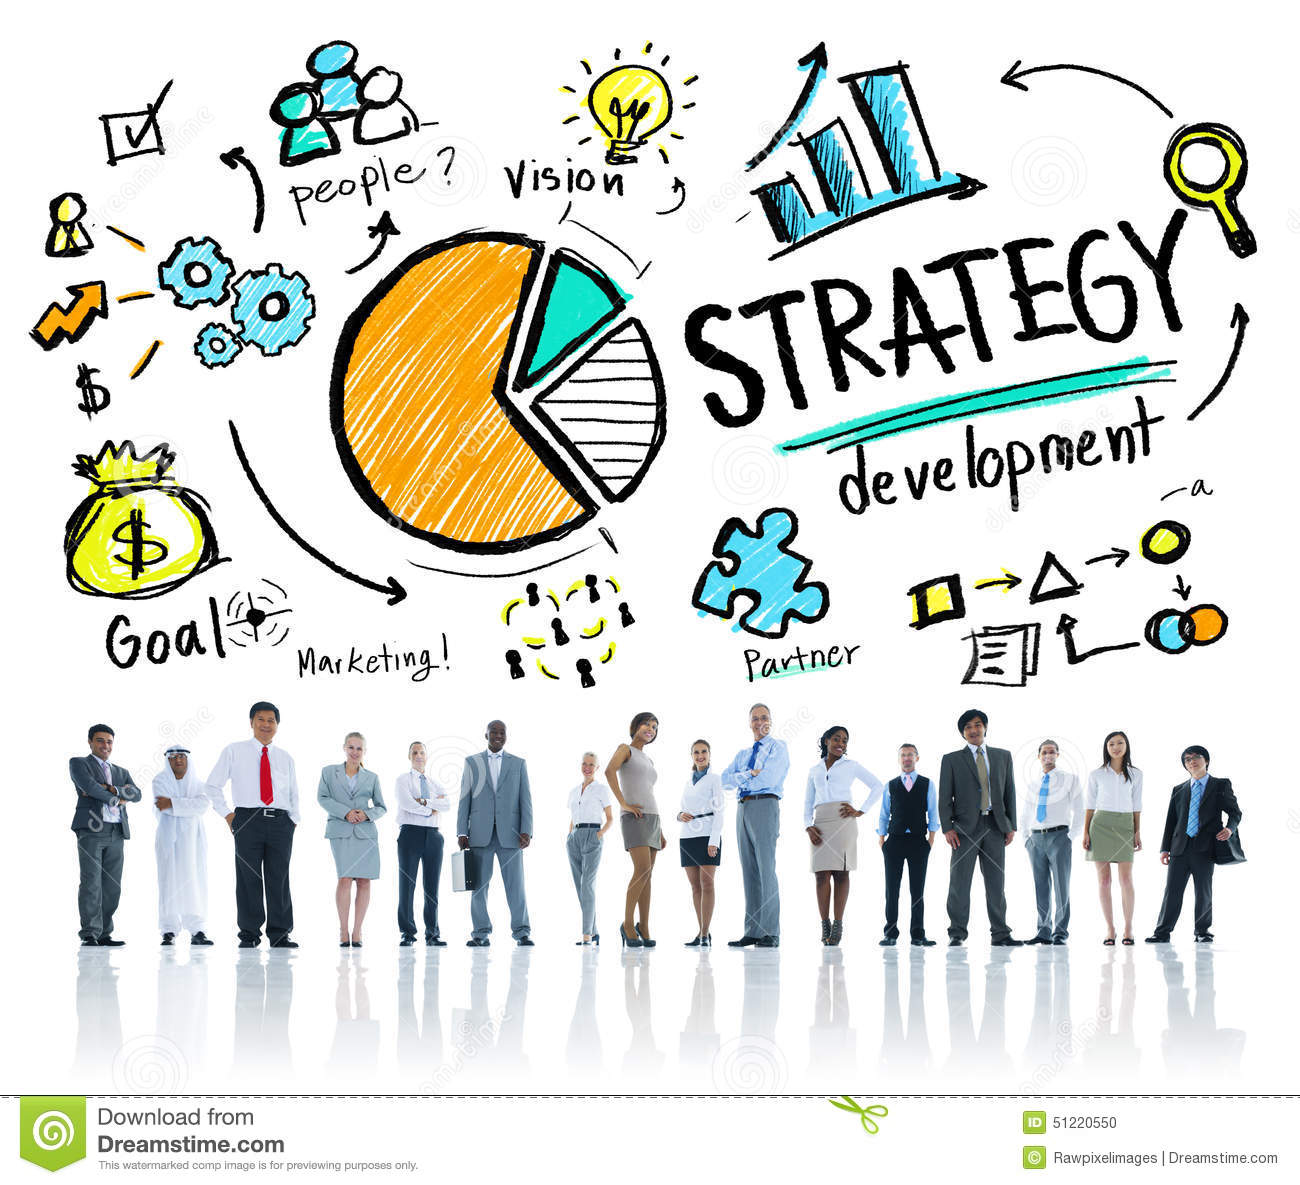 strategy-development-goal-marketing-vision-planning-business-concept-51220550